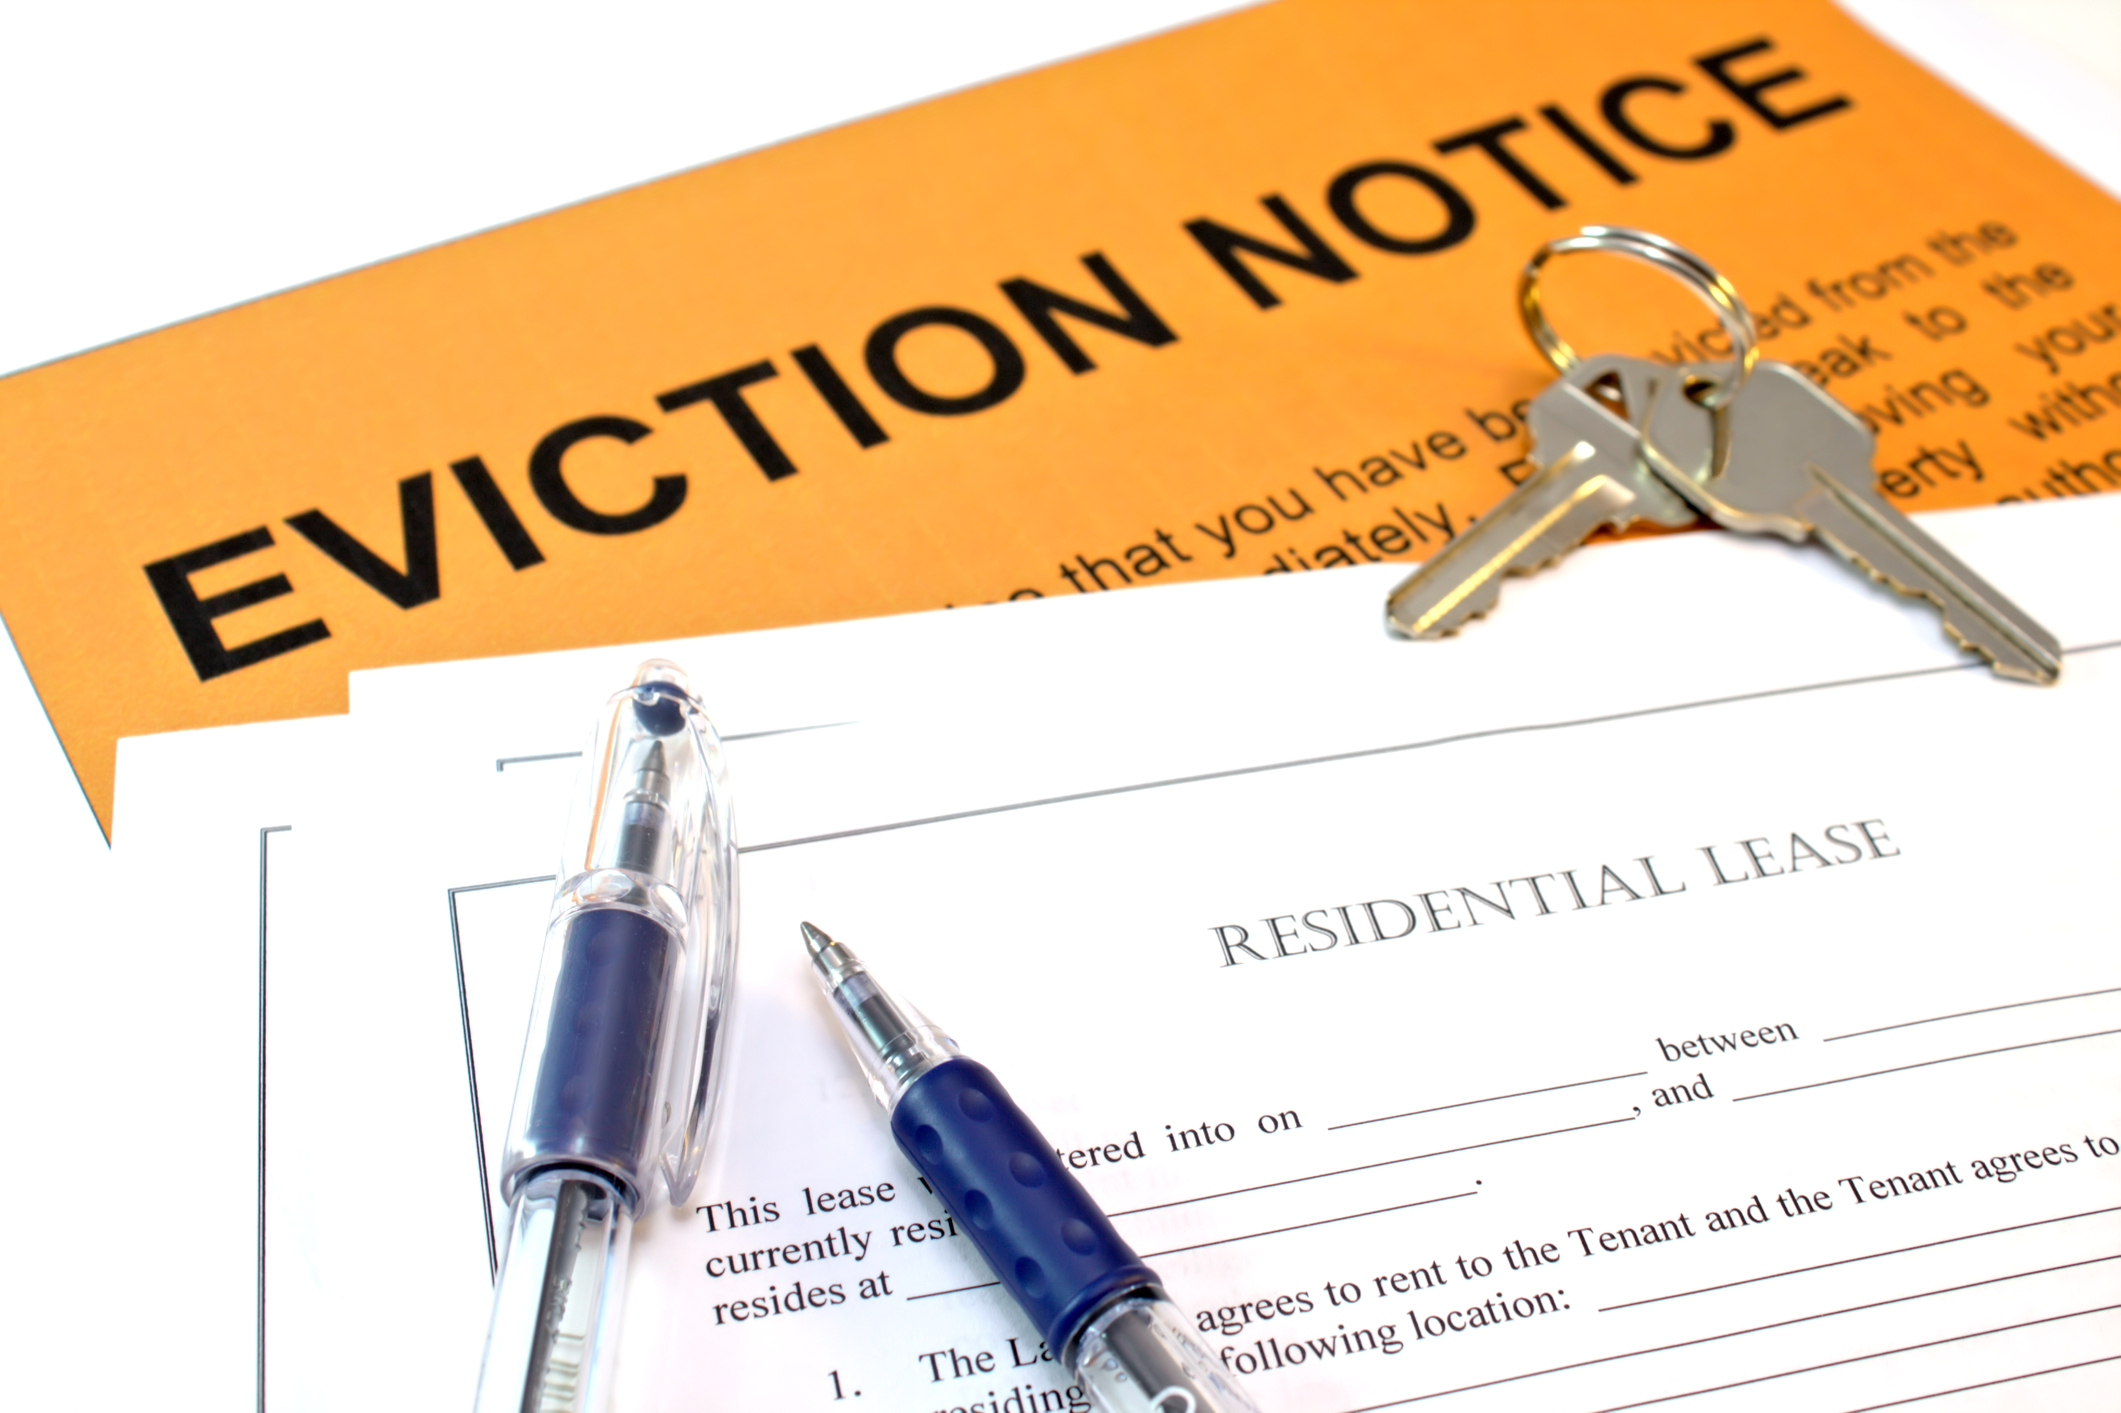 Eviction Attorneys in Coral springs